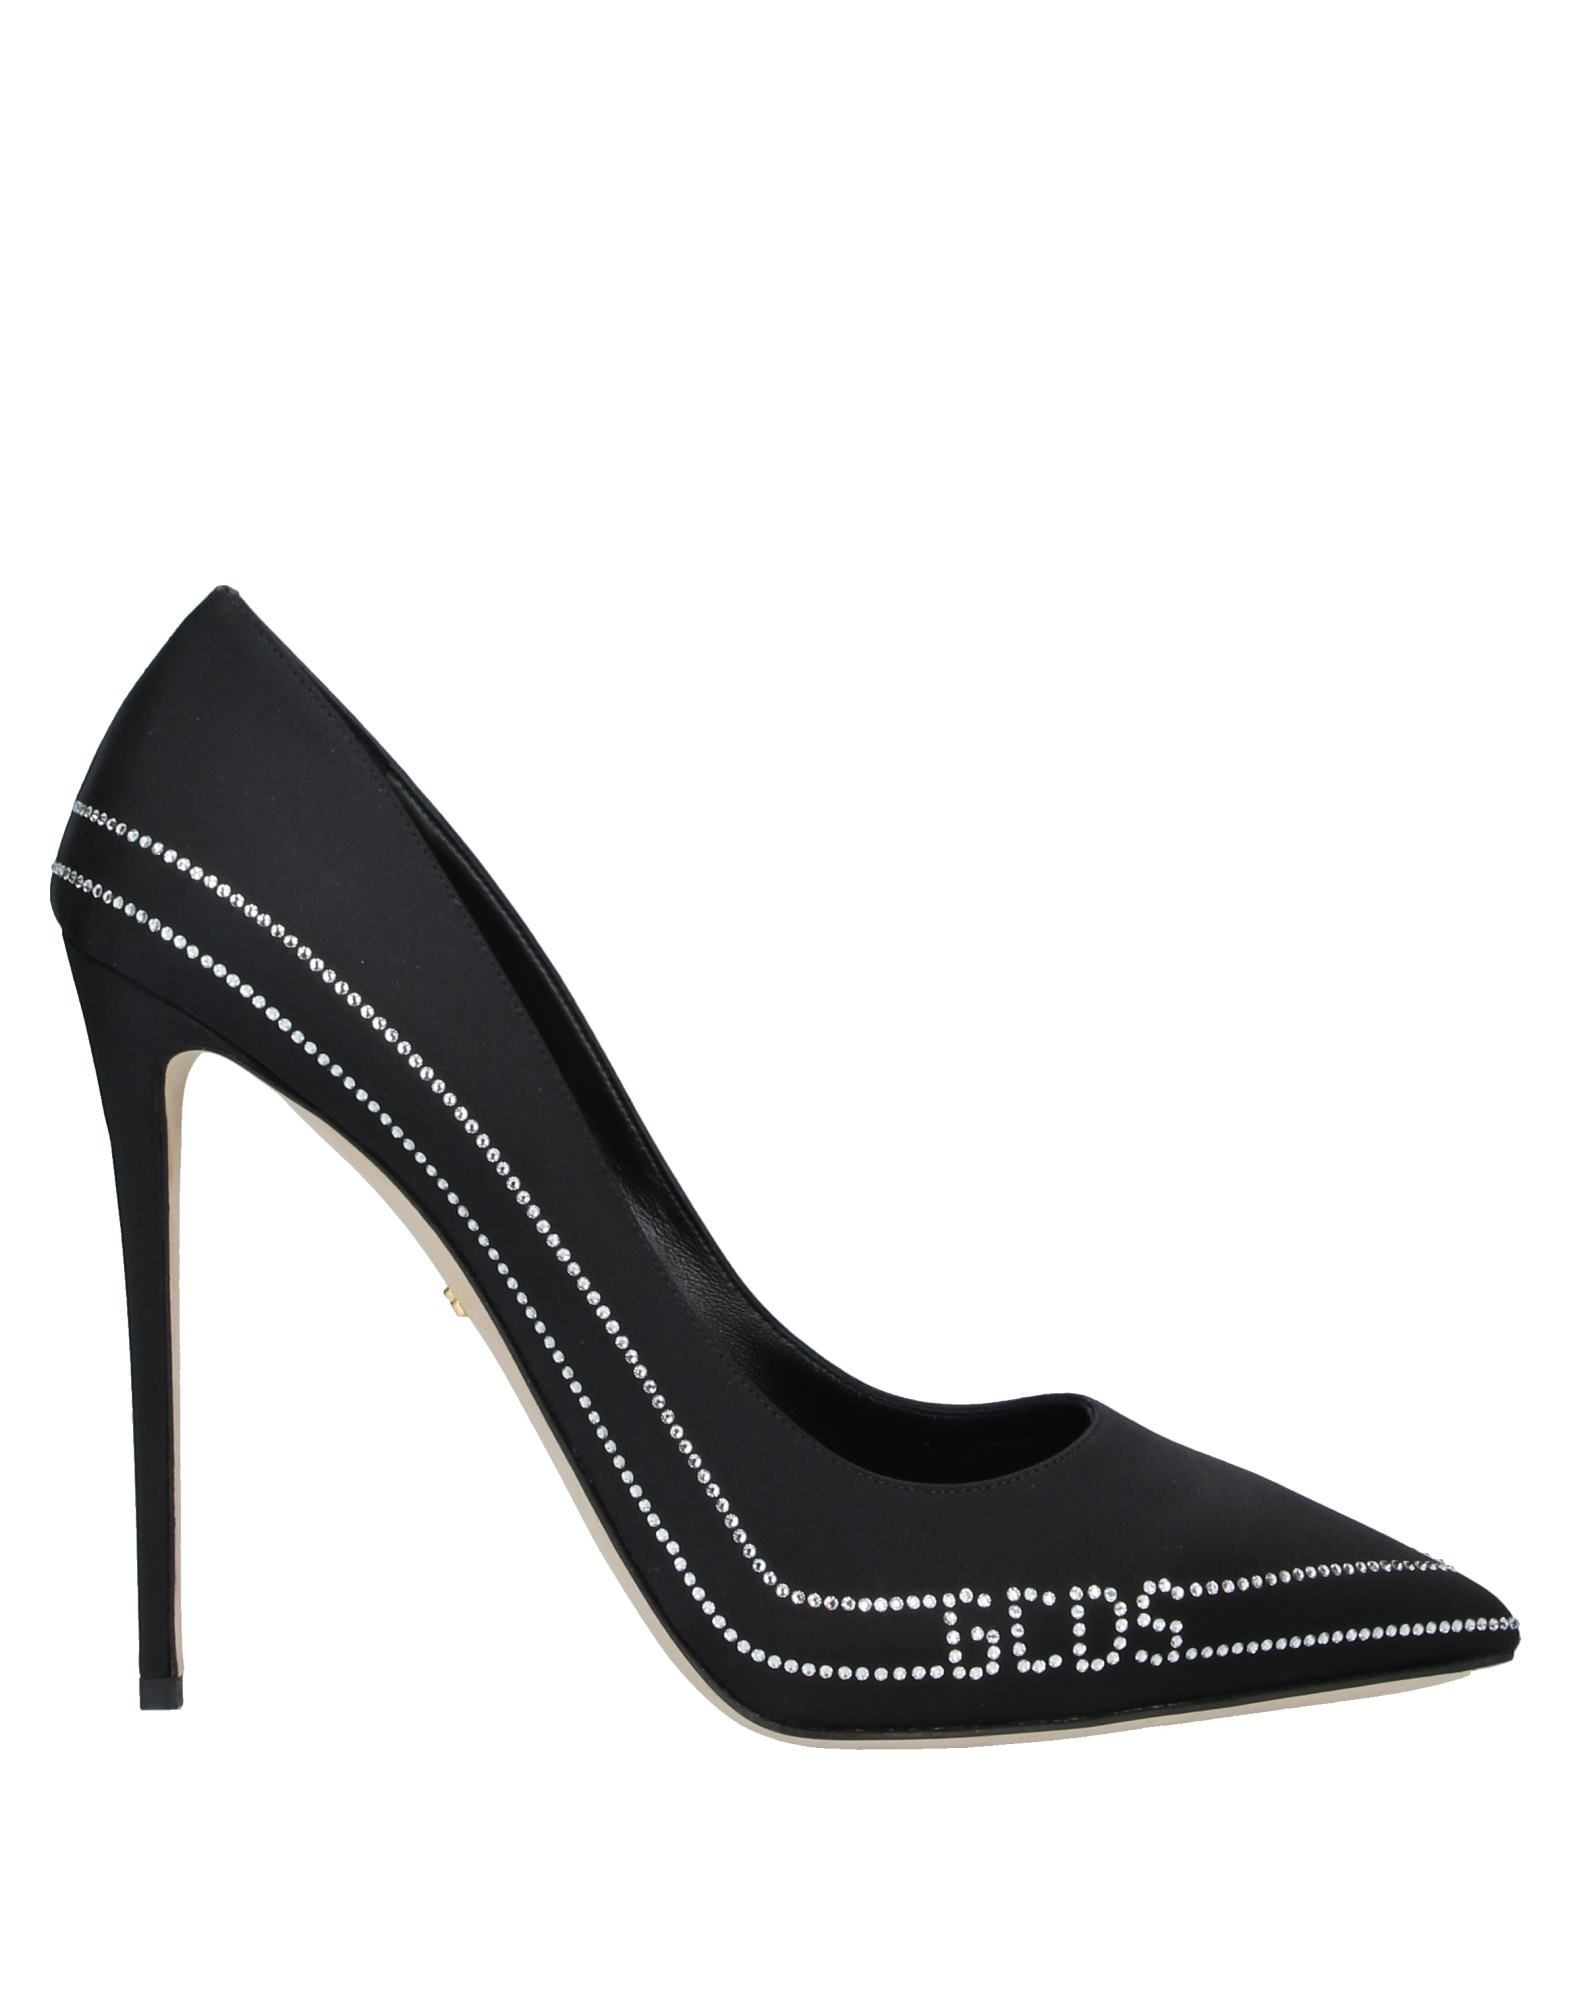 GCDS Pumps. satin, logo, rhinestones, solid color, narrow toeline, spike heel, covered heel, leather lining, leather sole, contains non-textile parts of animal origin. Textile fibers